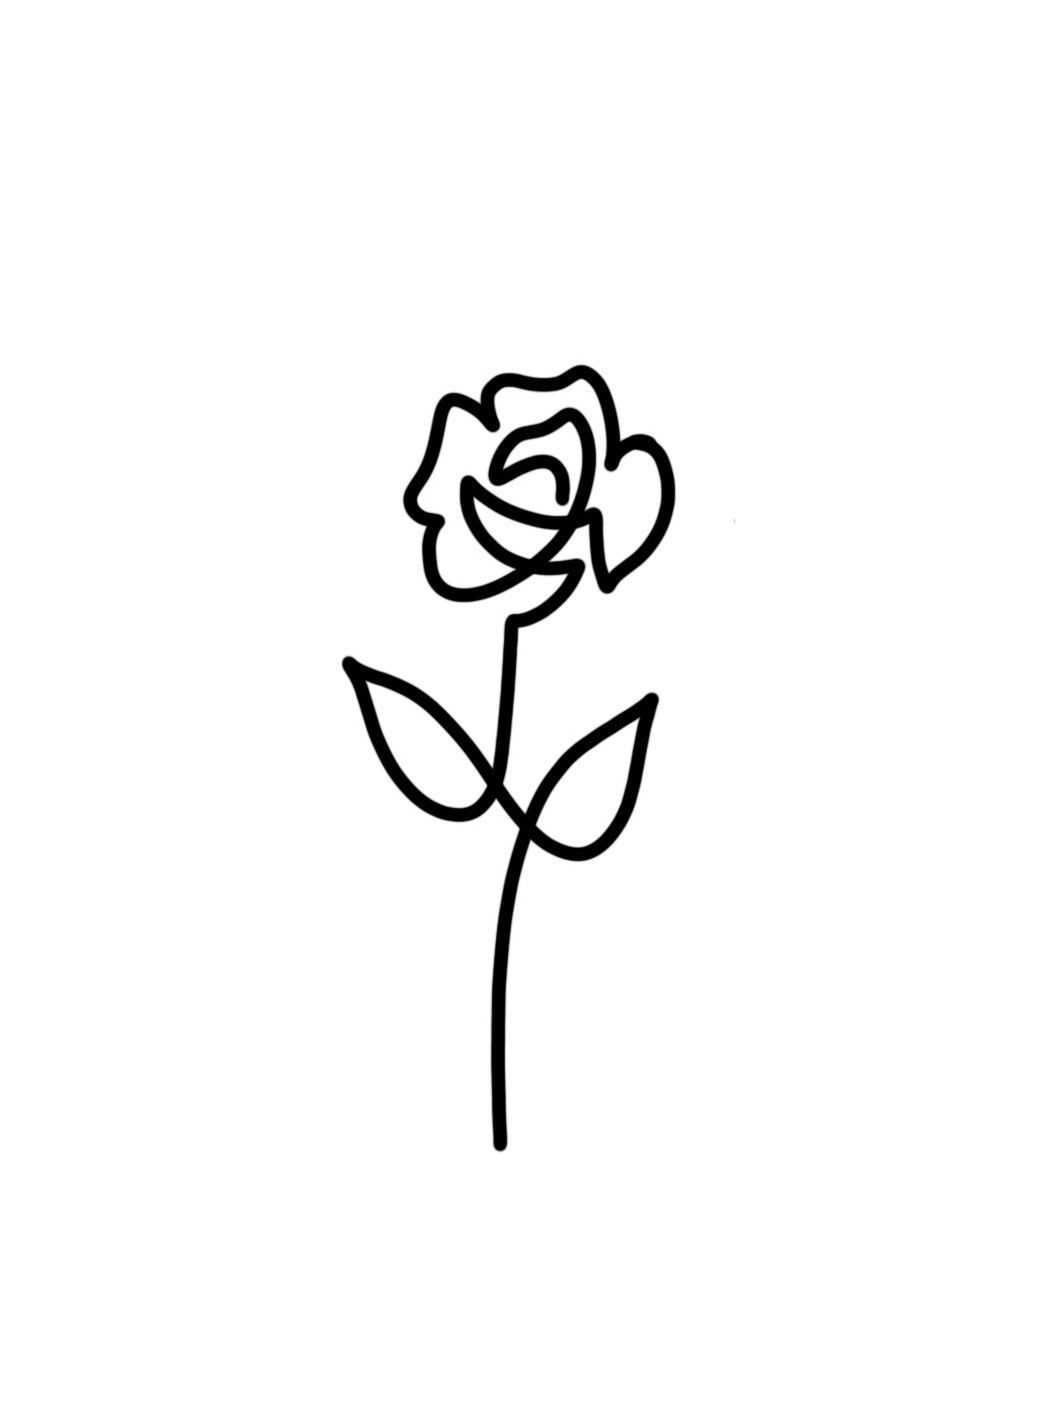 Rose Line Drawing Realistic Tattoo Designs Tattoo Designs Ideas Seamless pattern flowers and butterflies. rose line drawing realistic tattoo